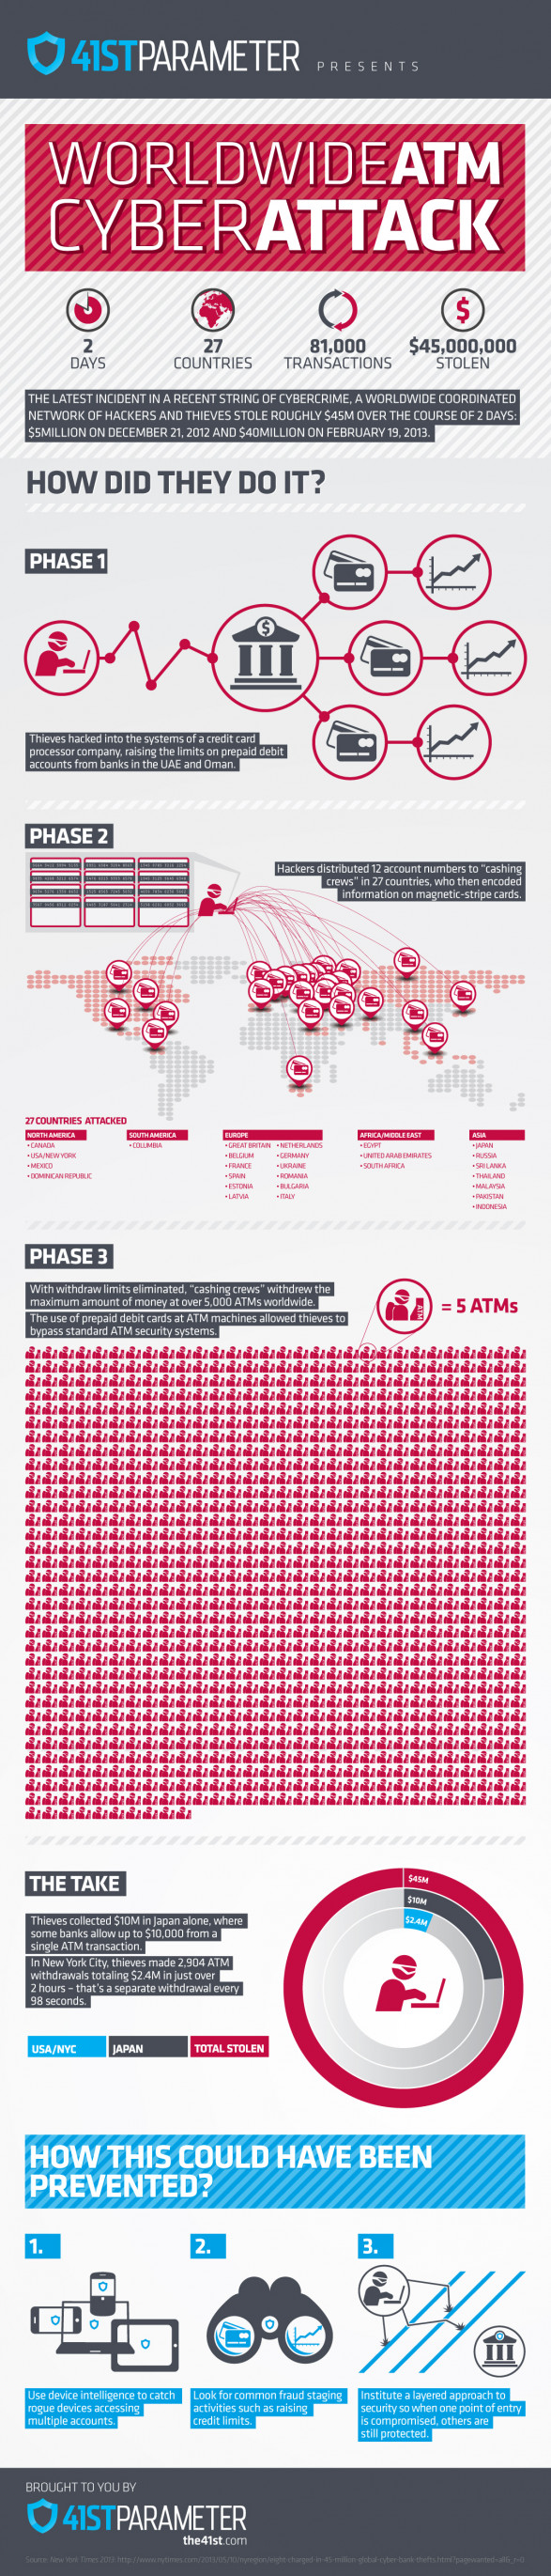 ATM Cyberattack Worldwide: The $45M Heist [INFOGRAPHIC]